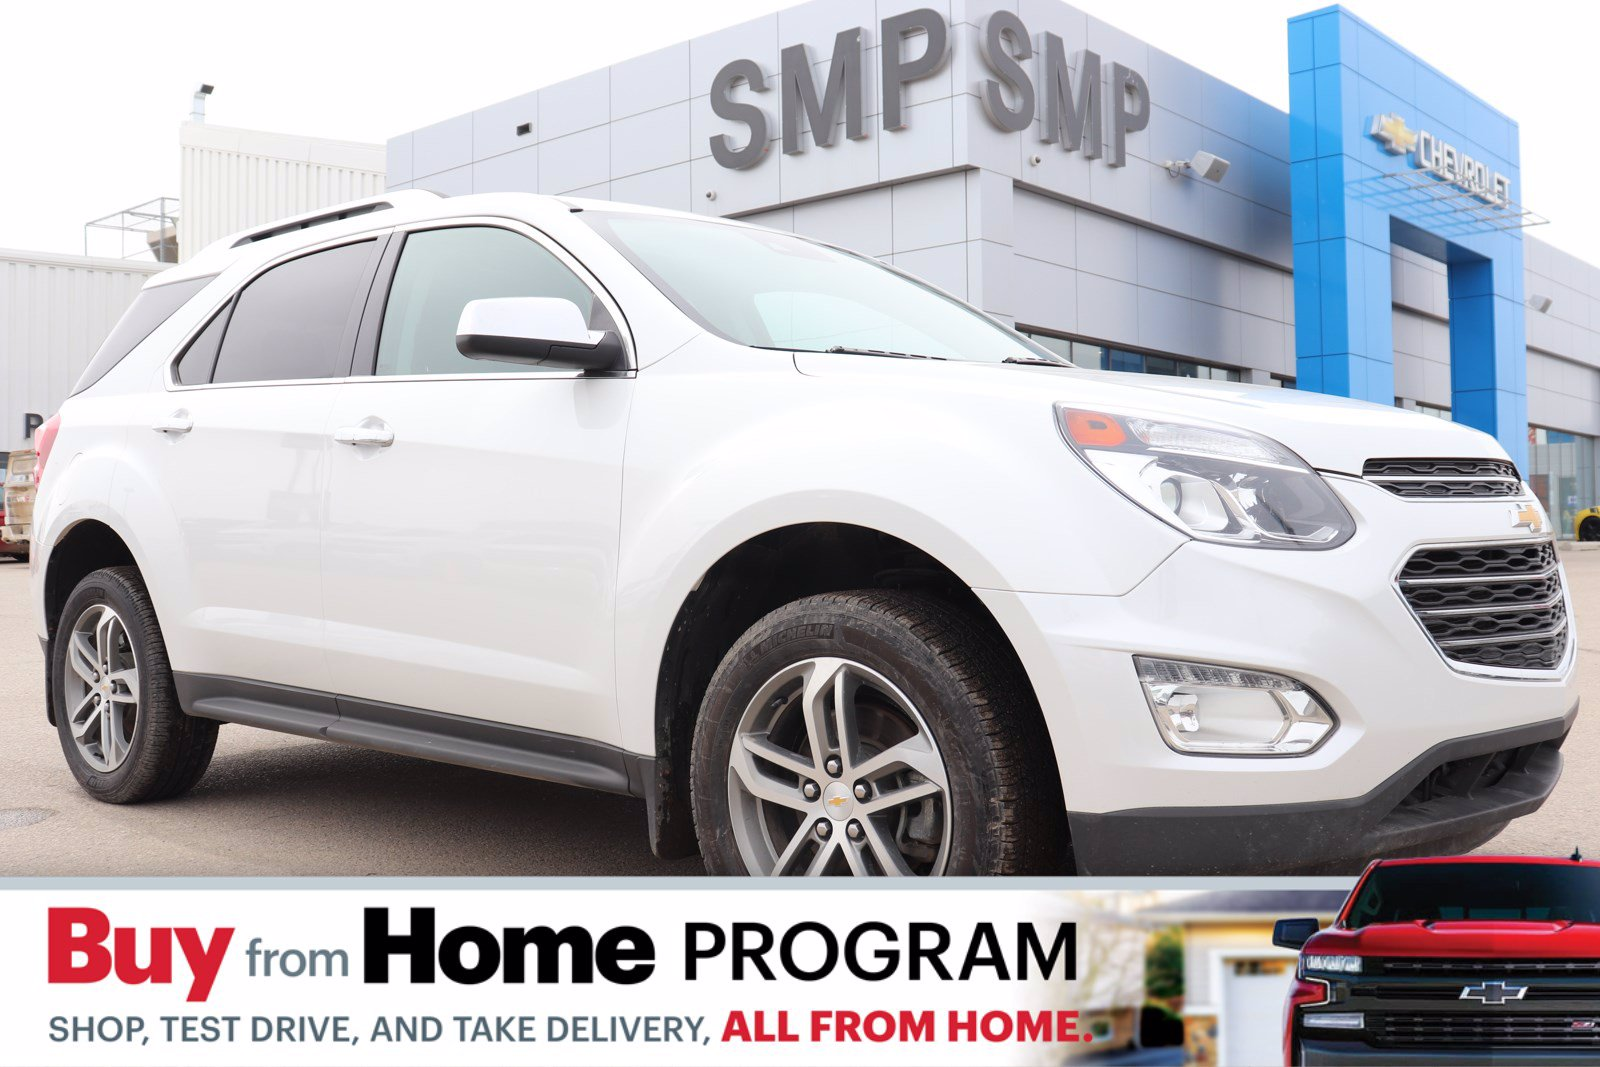 Certified Pre-Owned 2017 Chevrolet Equinox Premier- Heated Seats, Nav, Sunroof, Back up Camera, Rem Start